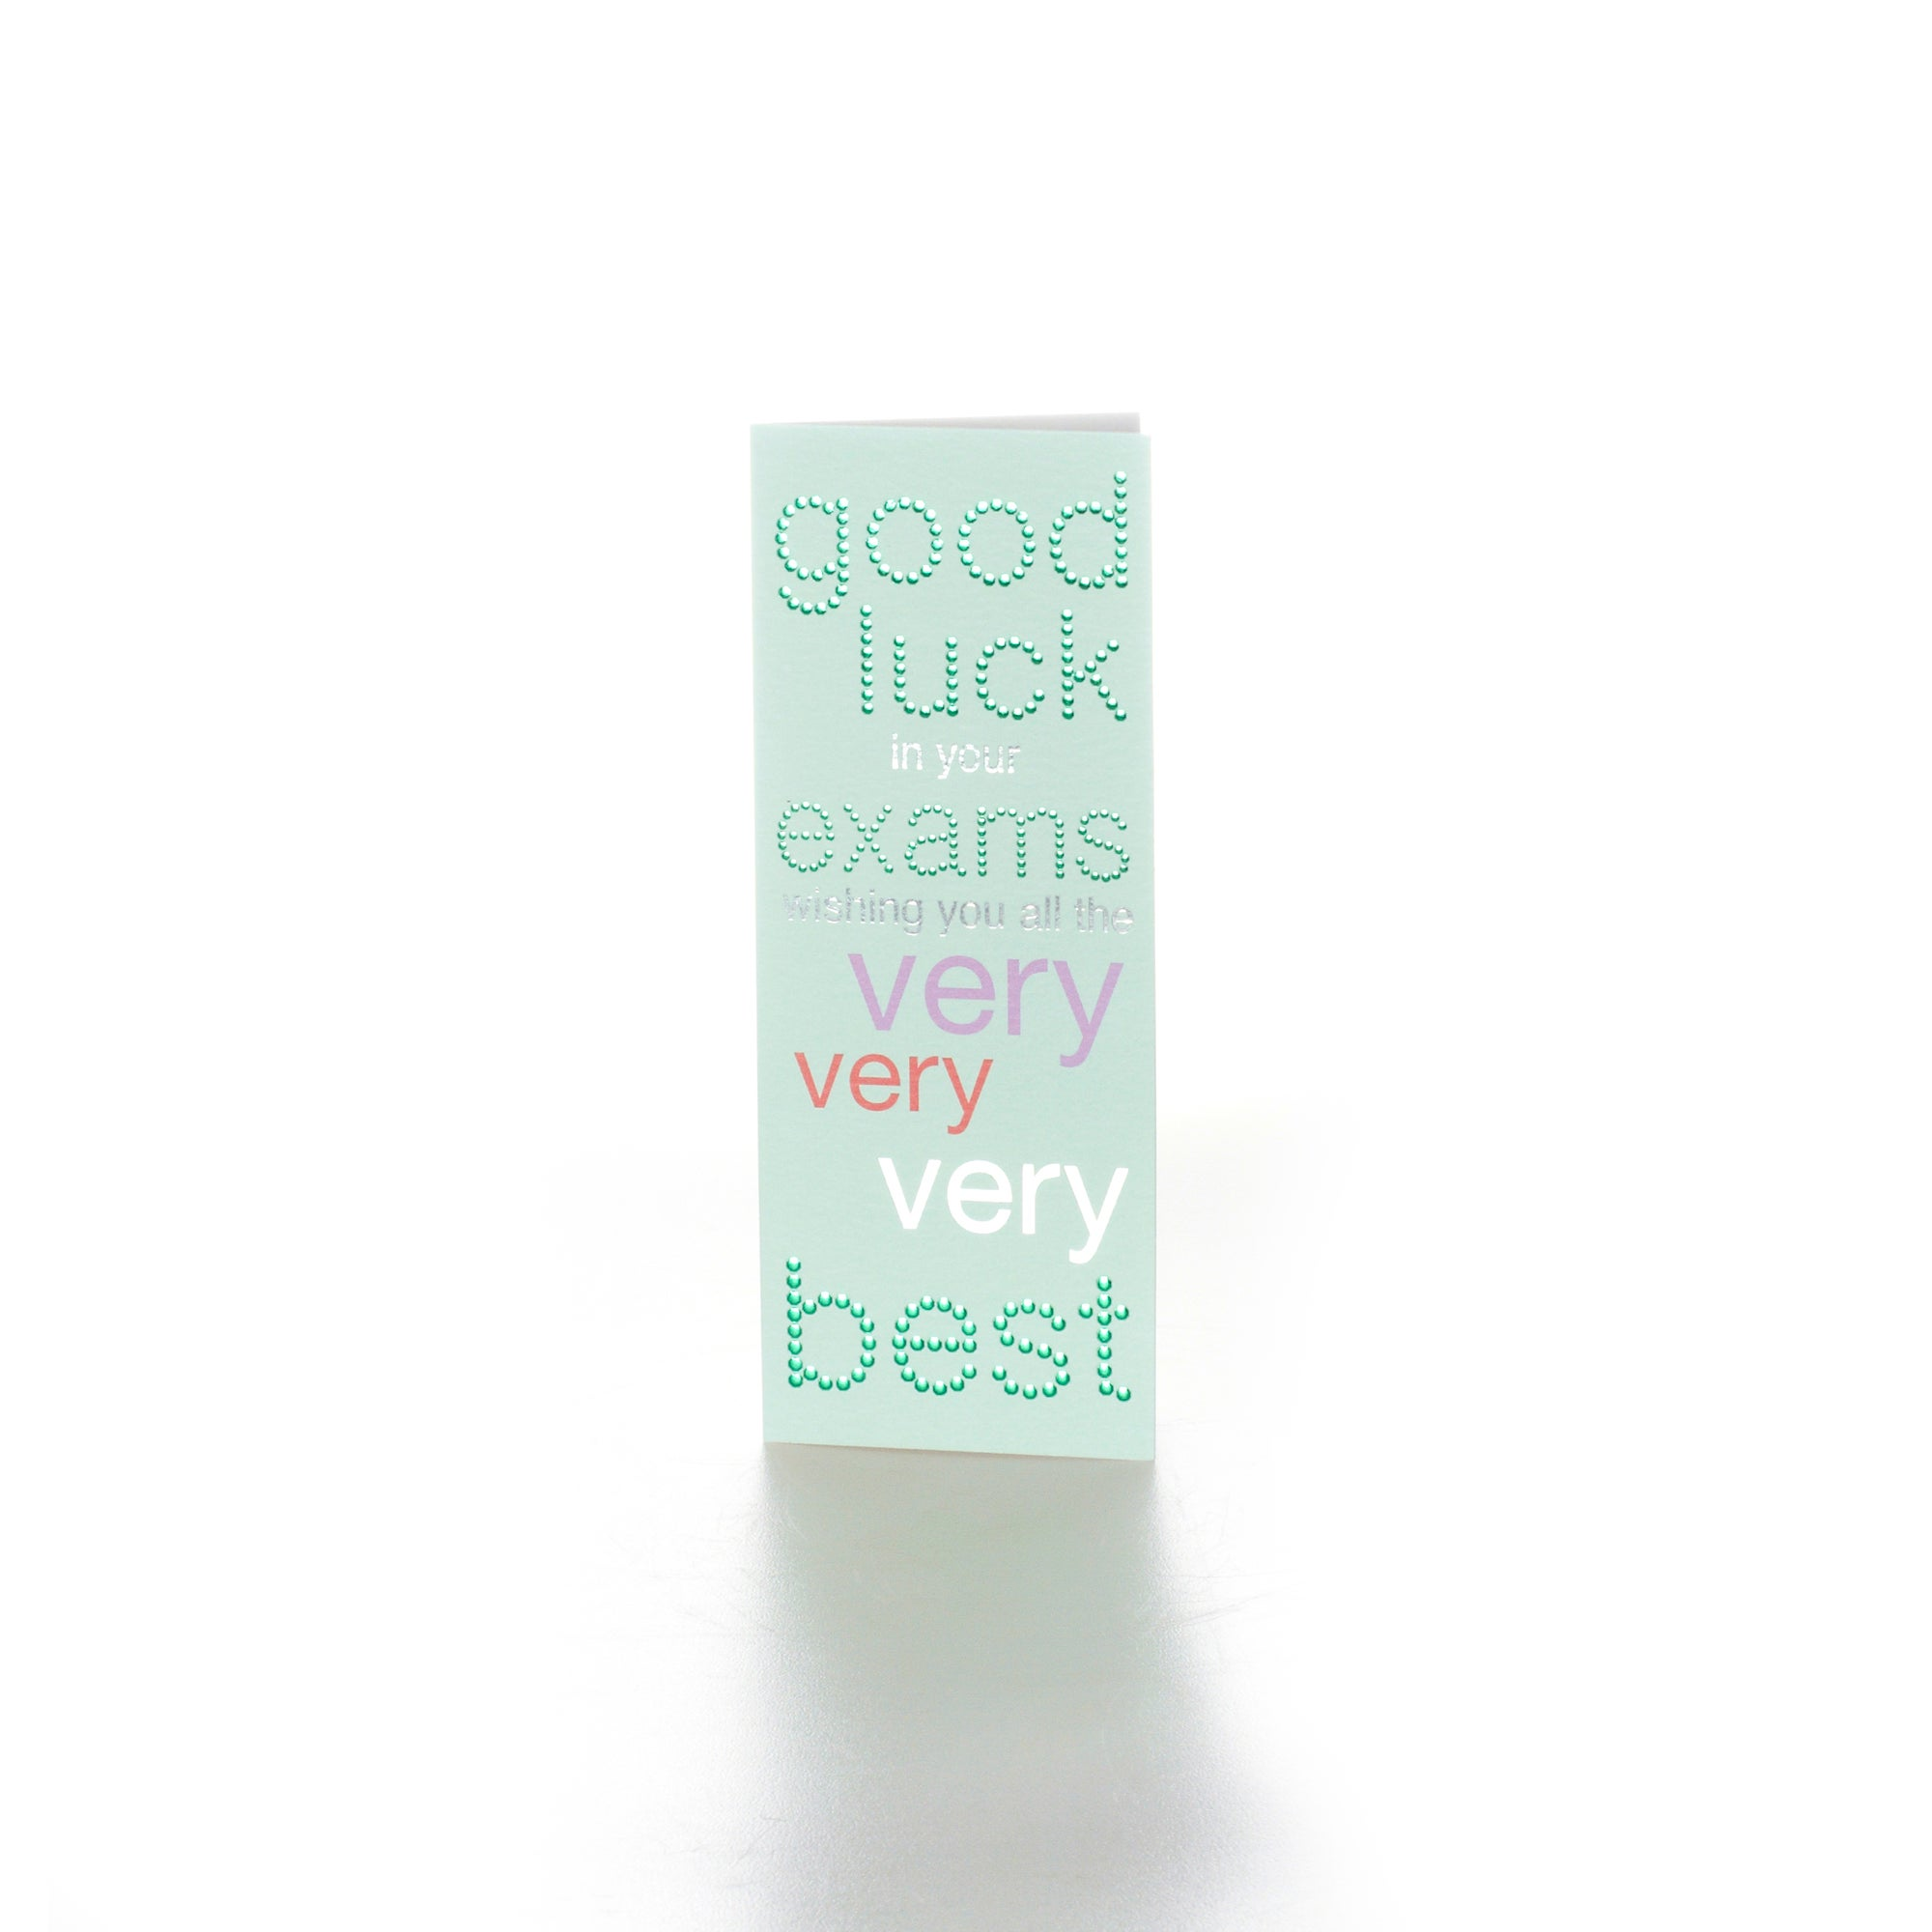 Neapolitan Exam Good Luck Card